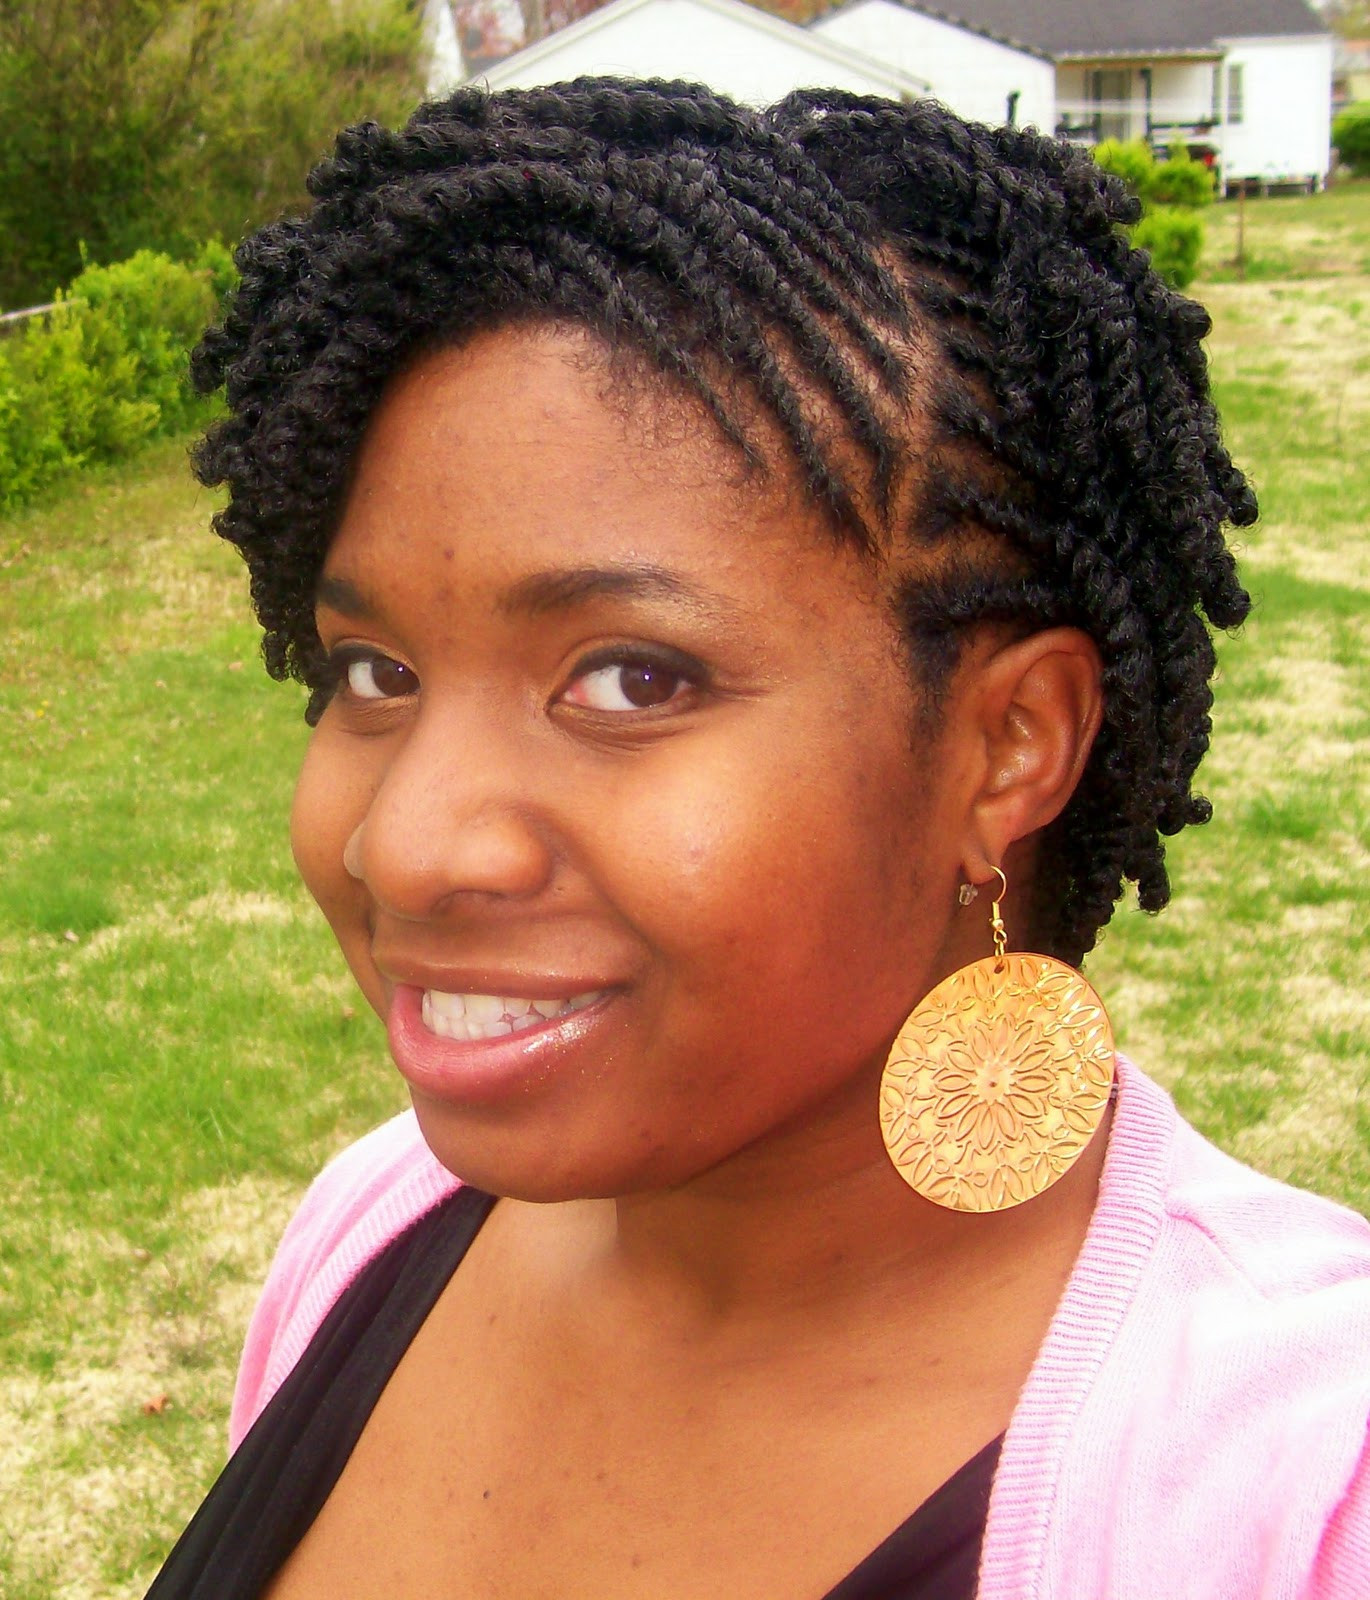 Best ideas about Flat Twist Hairstyles On Natural Hair . Save or Pin Flat twist styles for short natural hair BakuLand Now.